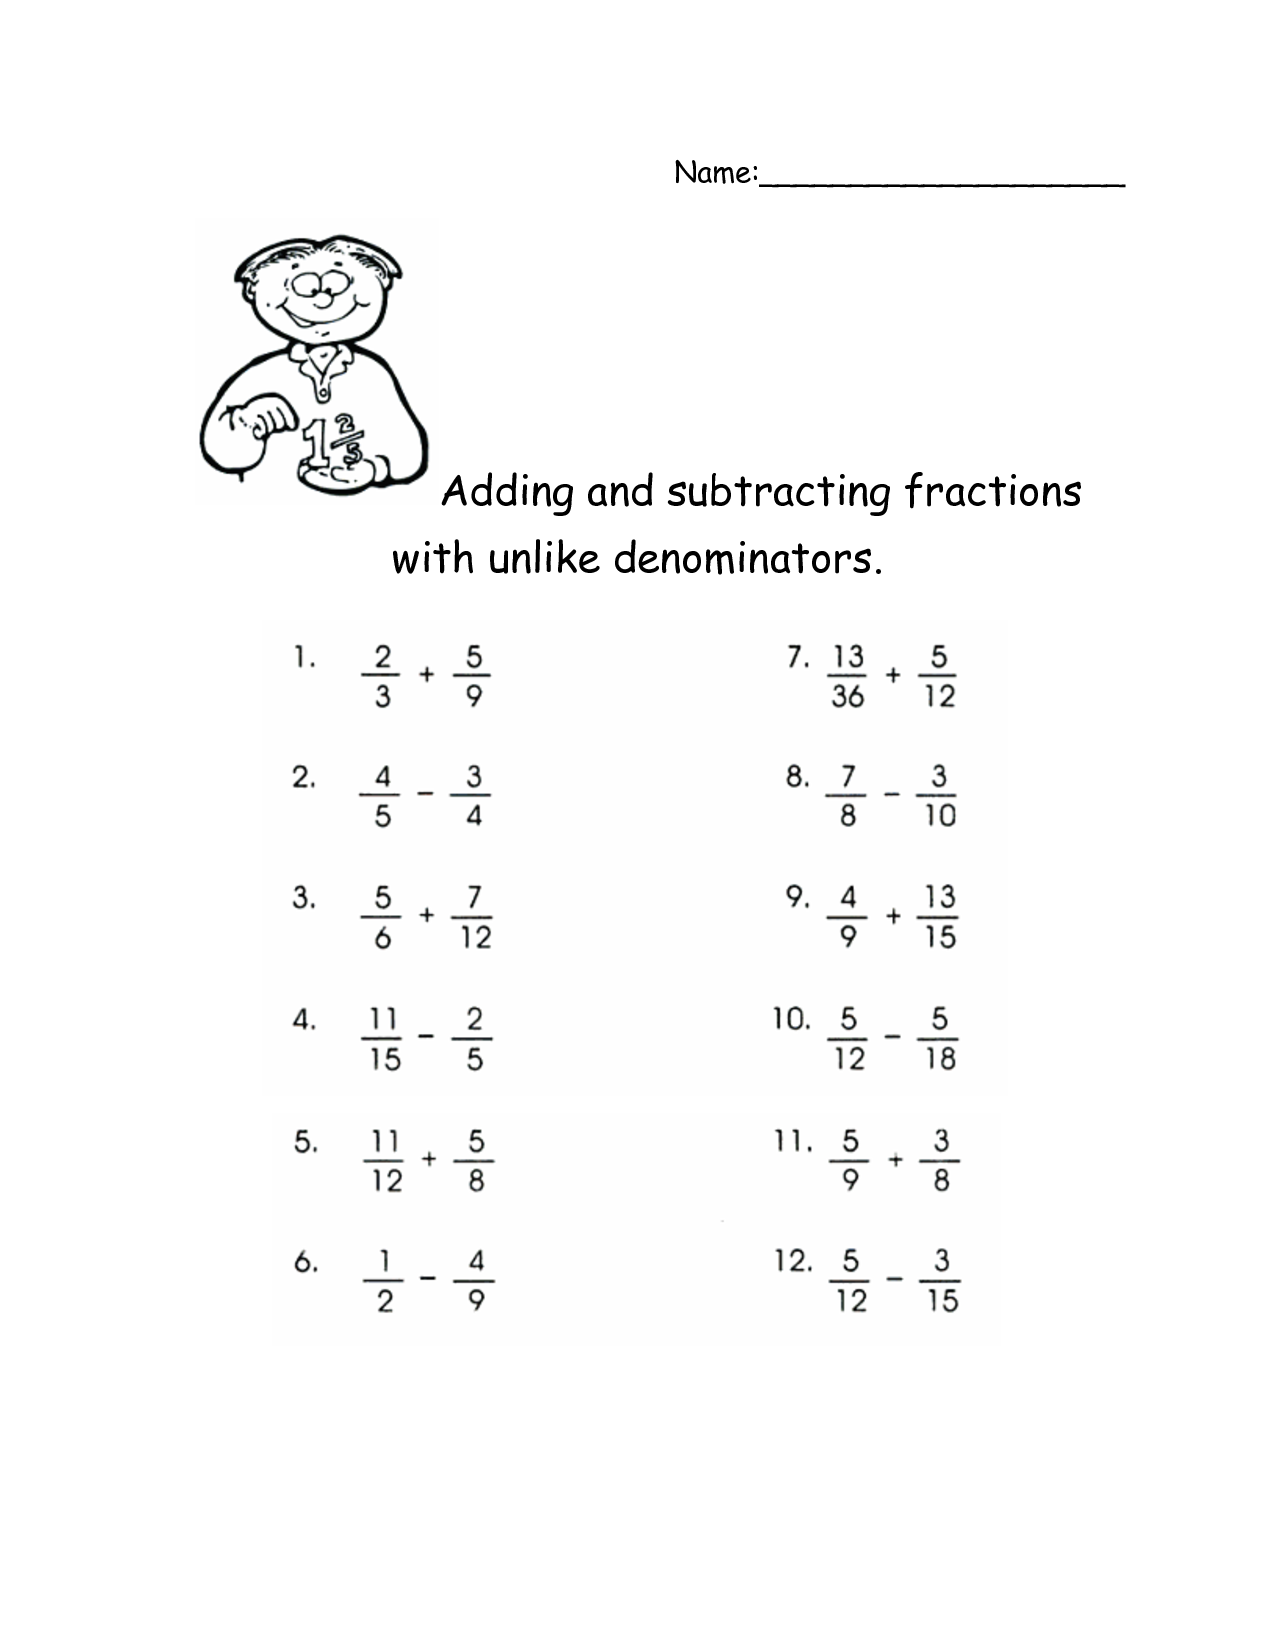 worksheet Subtraction Fraction Worksheets adding and subtracting fractions with unlike denominators activities